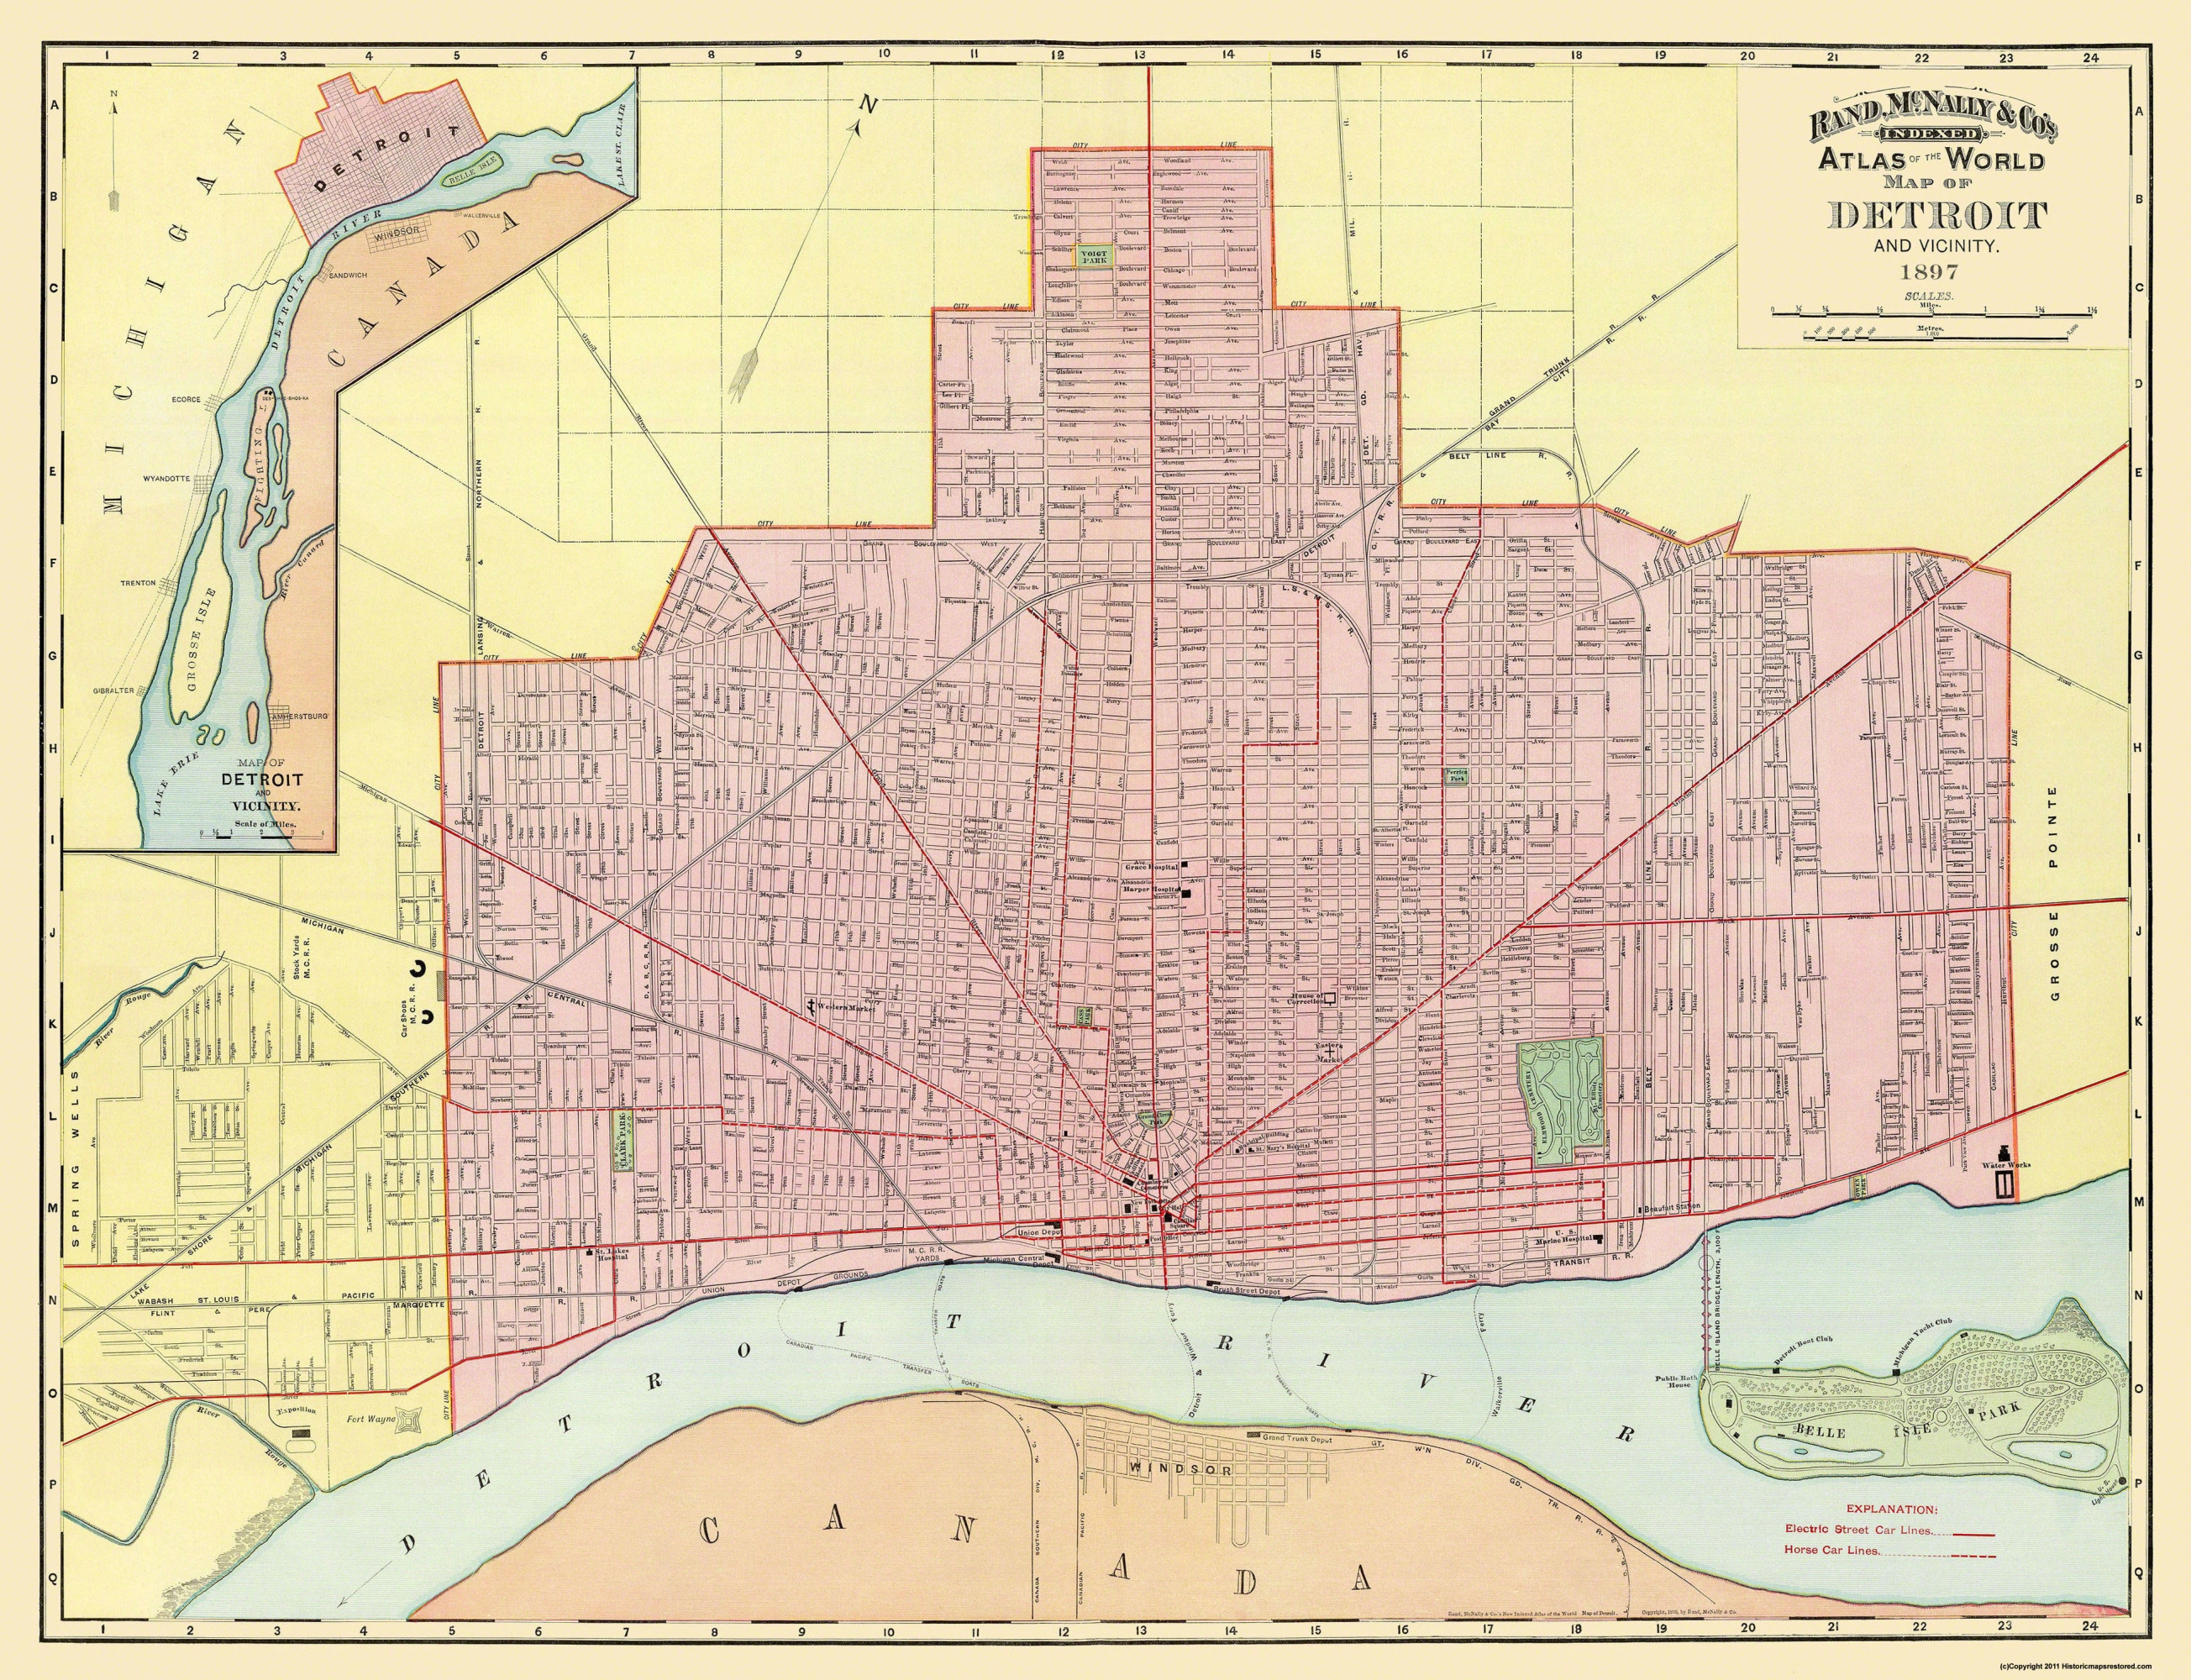 Detroit Michigan - Rand McNally 1897 - 30 x 23 on memphis map, united states map, duluth map, chicago map, toronto map, henry ford hospital map, royal oak map, great lakes map, cincinnati map, compton map, michigan map, las vegas map, pittsburgh map, atlanta map, quebec map, baltimore map, highland park map, usa map, st louis on map, new york map,